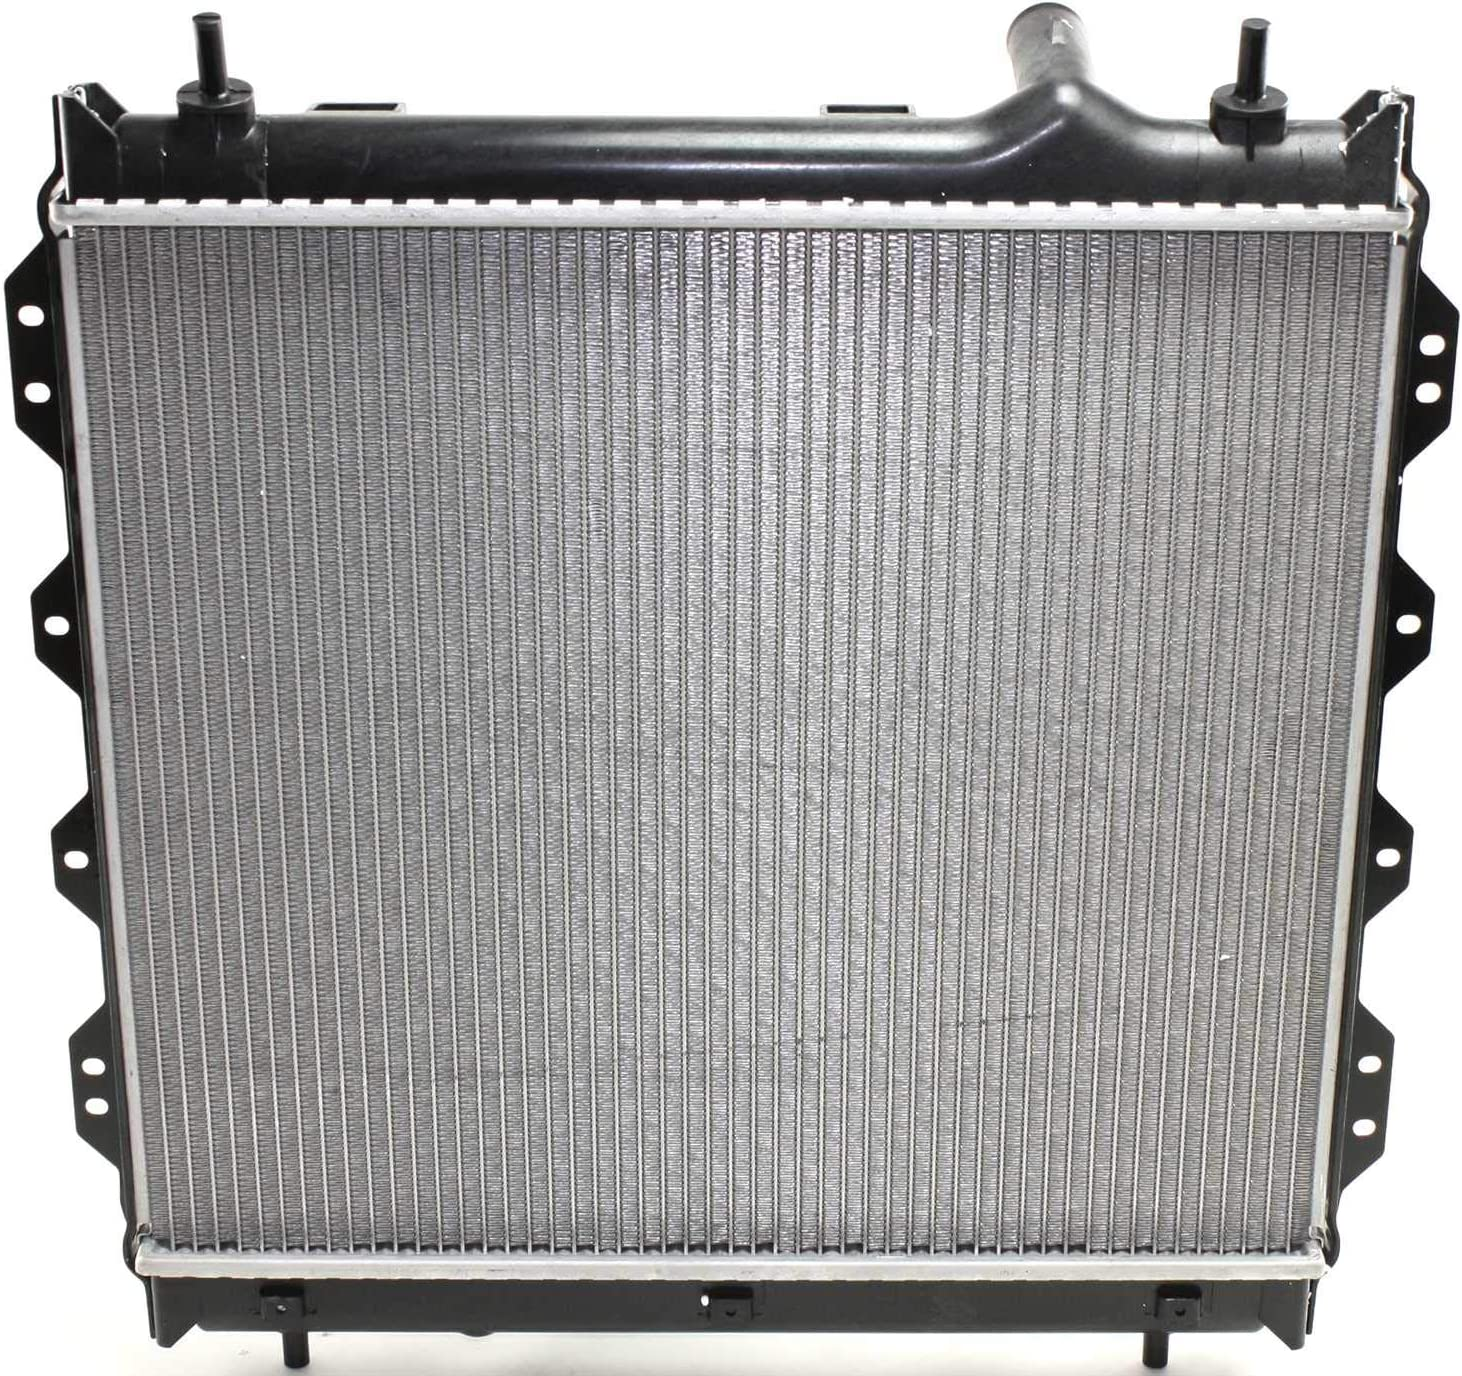 Garage-Pro Radiator for CHRYSLER PT CRUISER 2001-2010 Non-turbo Engine